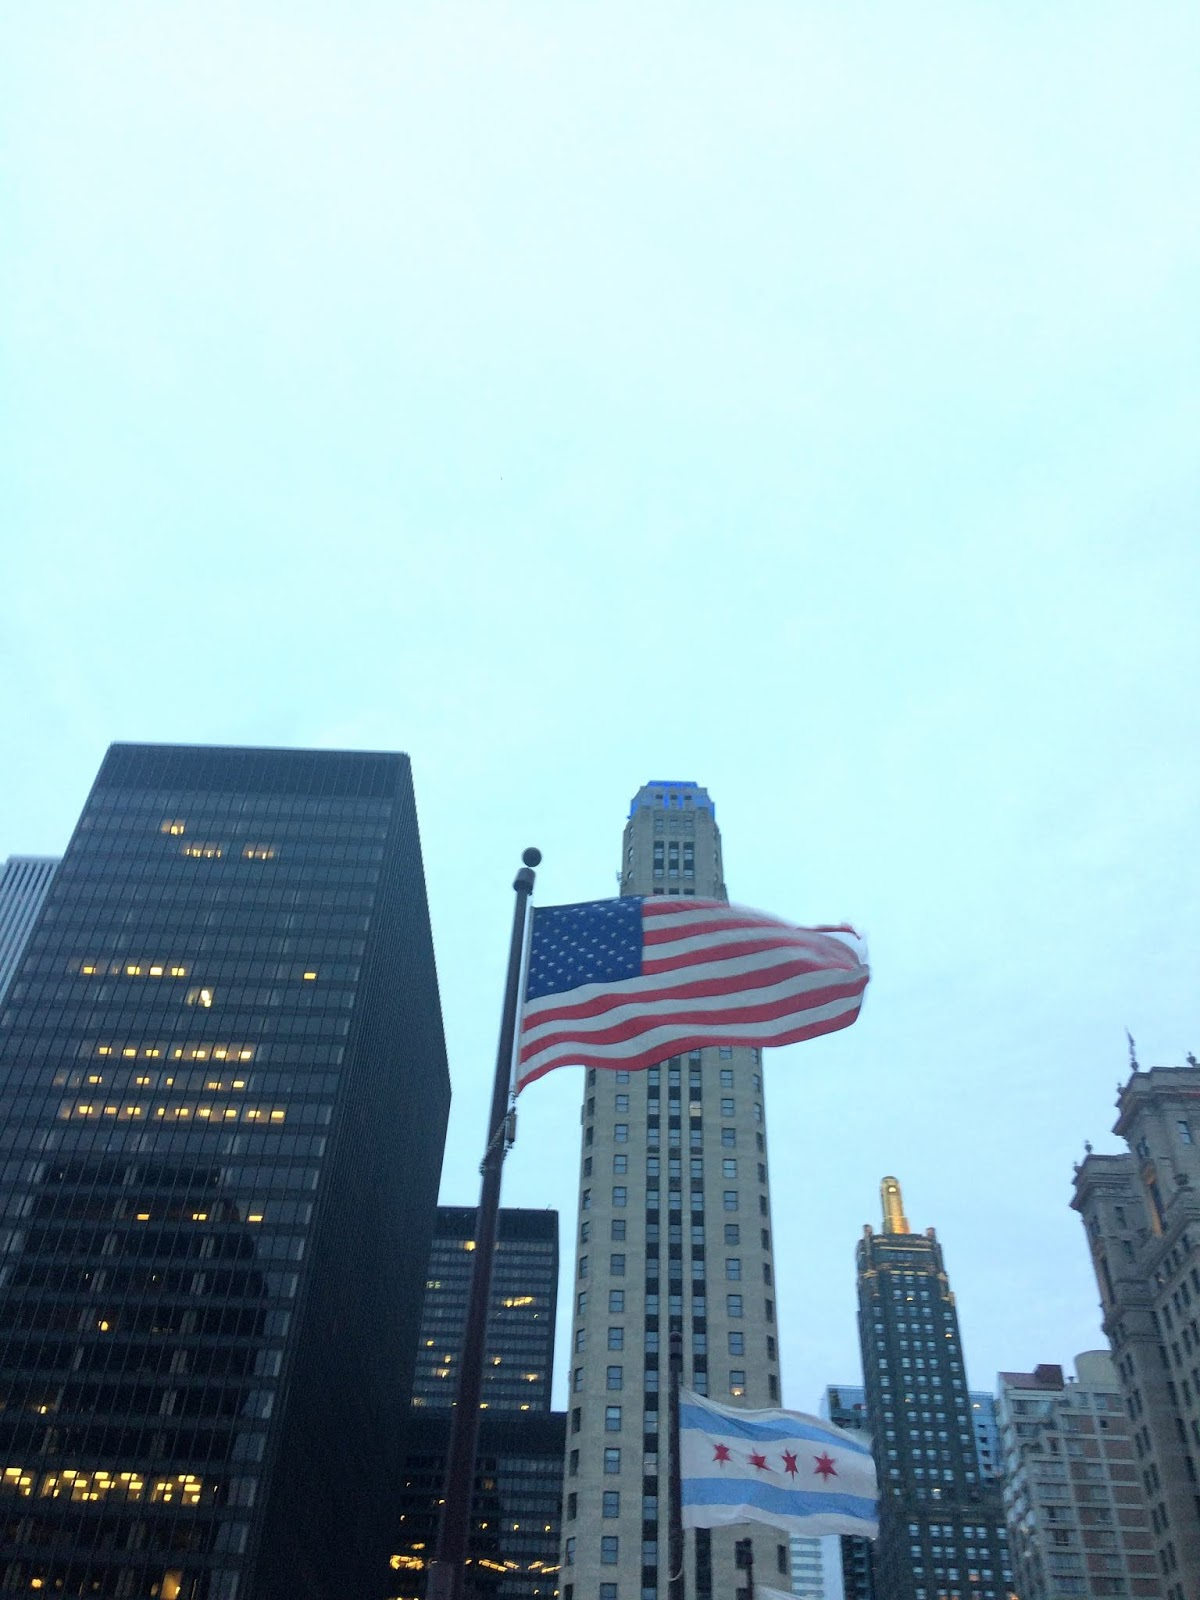 Upwards view of an american flag in the wind